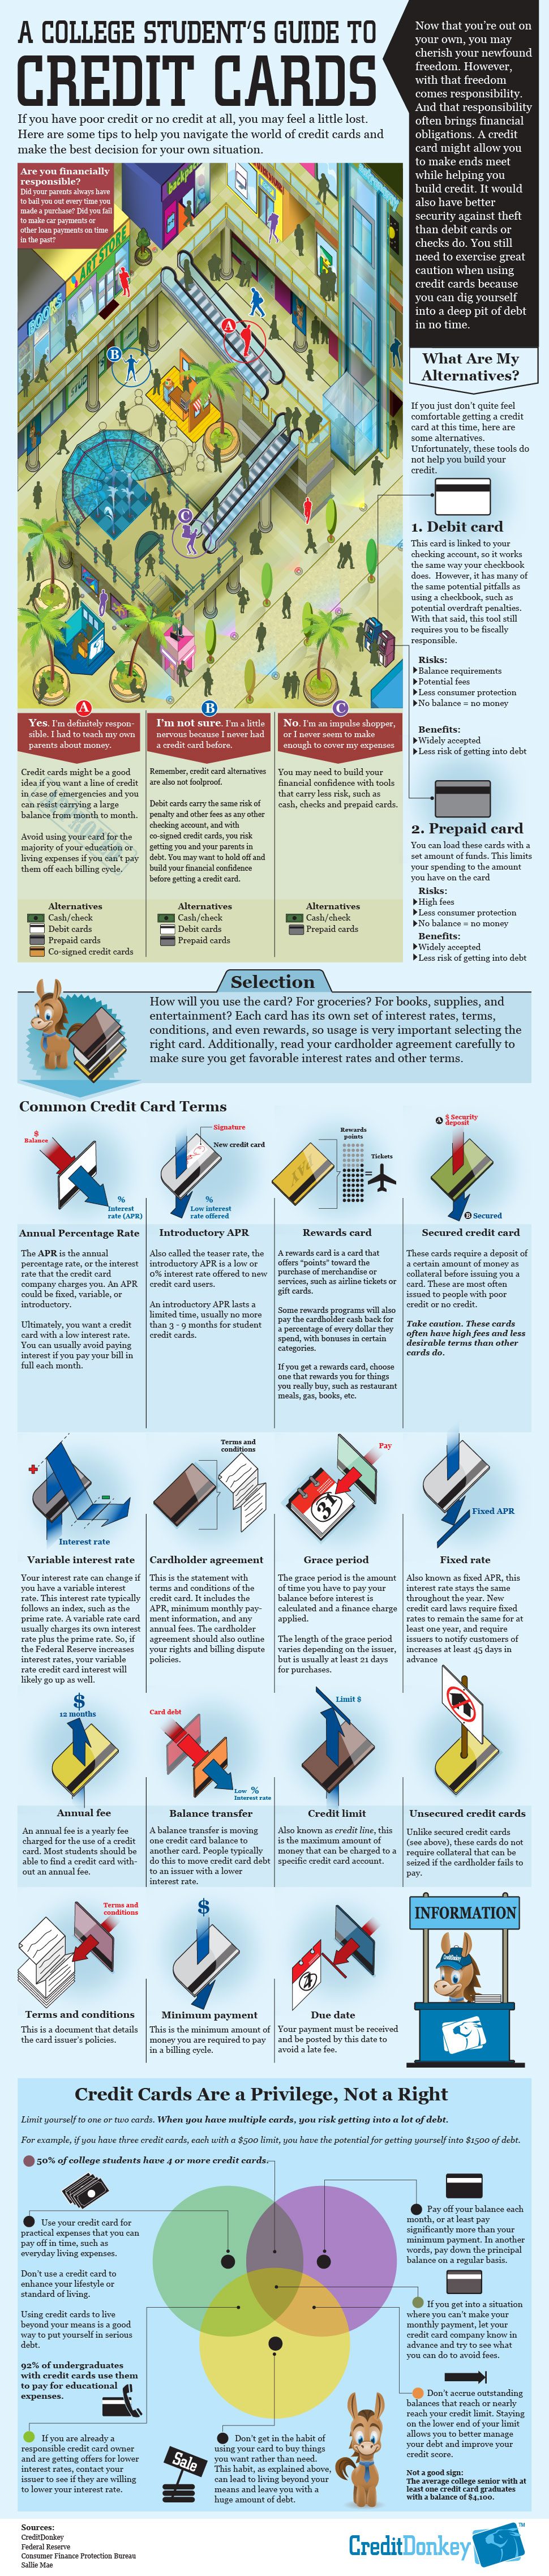 Credit Card debt ManageMent  a Profile Study of young     CBS News